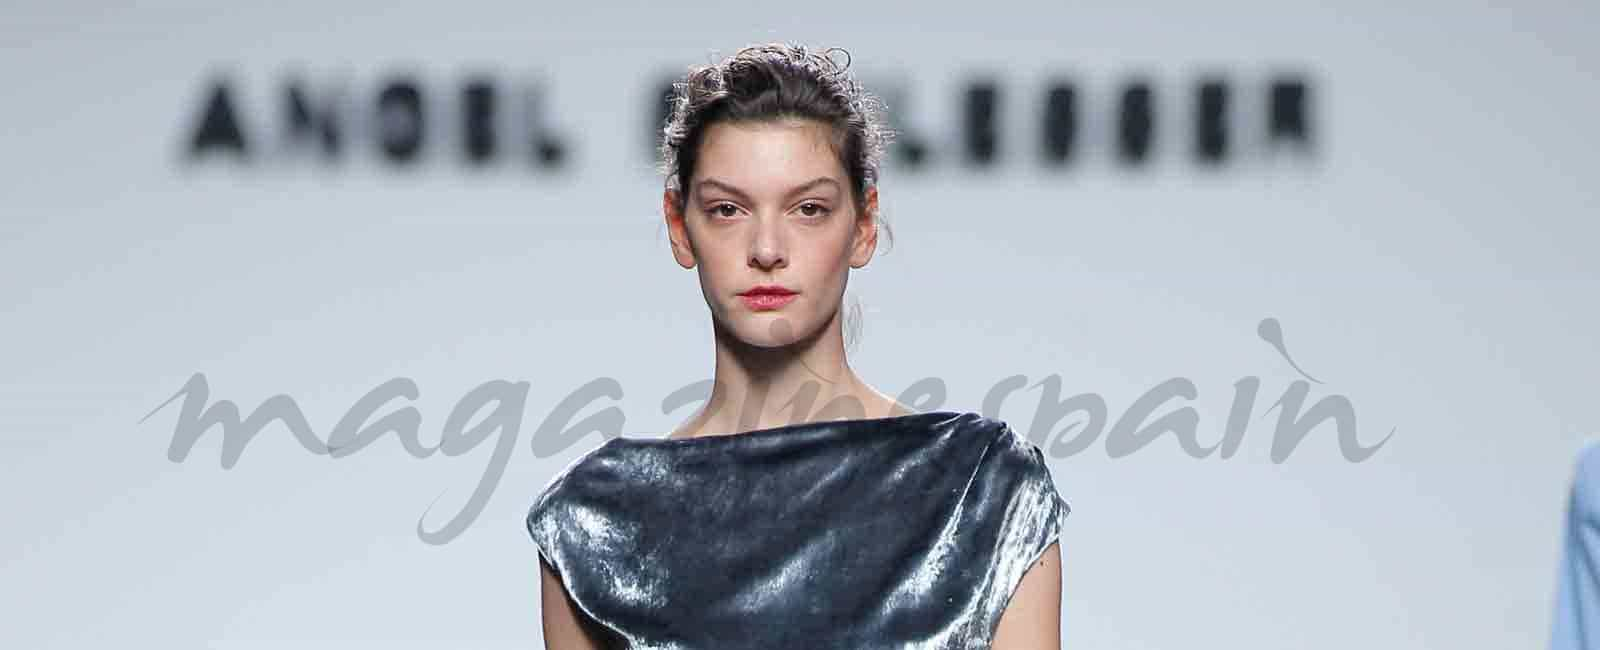 Mercedes Benz Fashion Week: Angel Schlesser Otoño-Invierno 2017/18